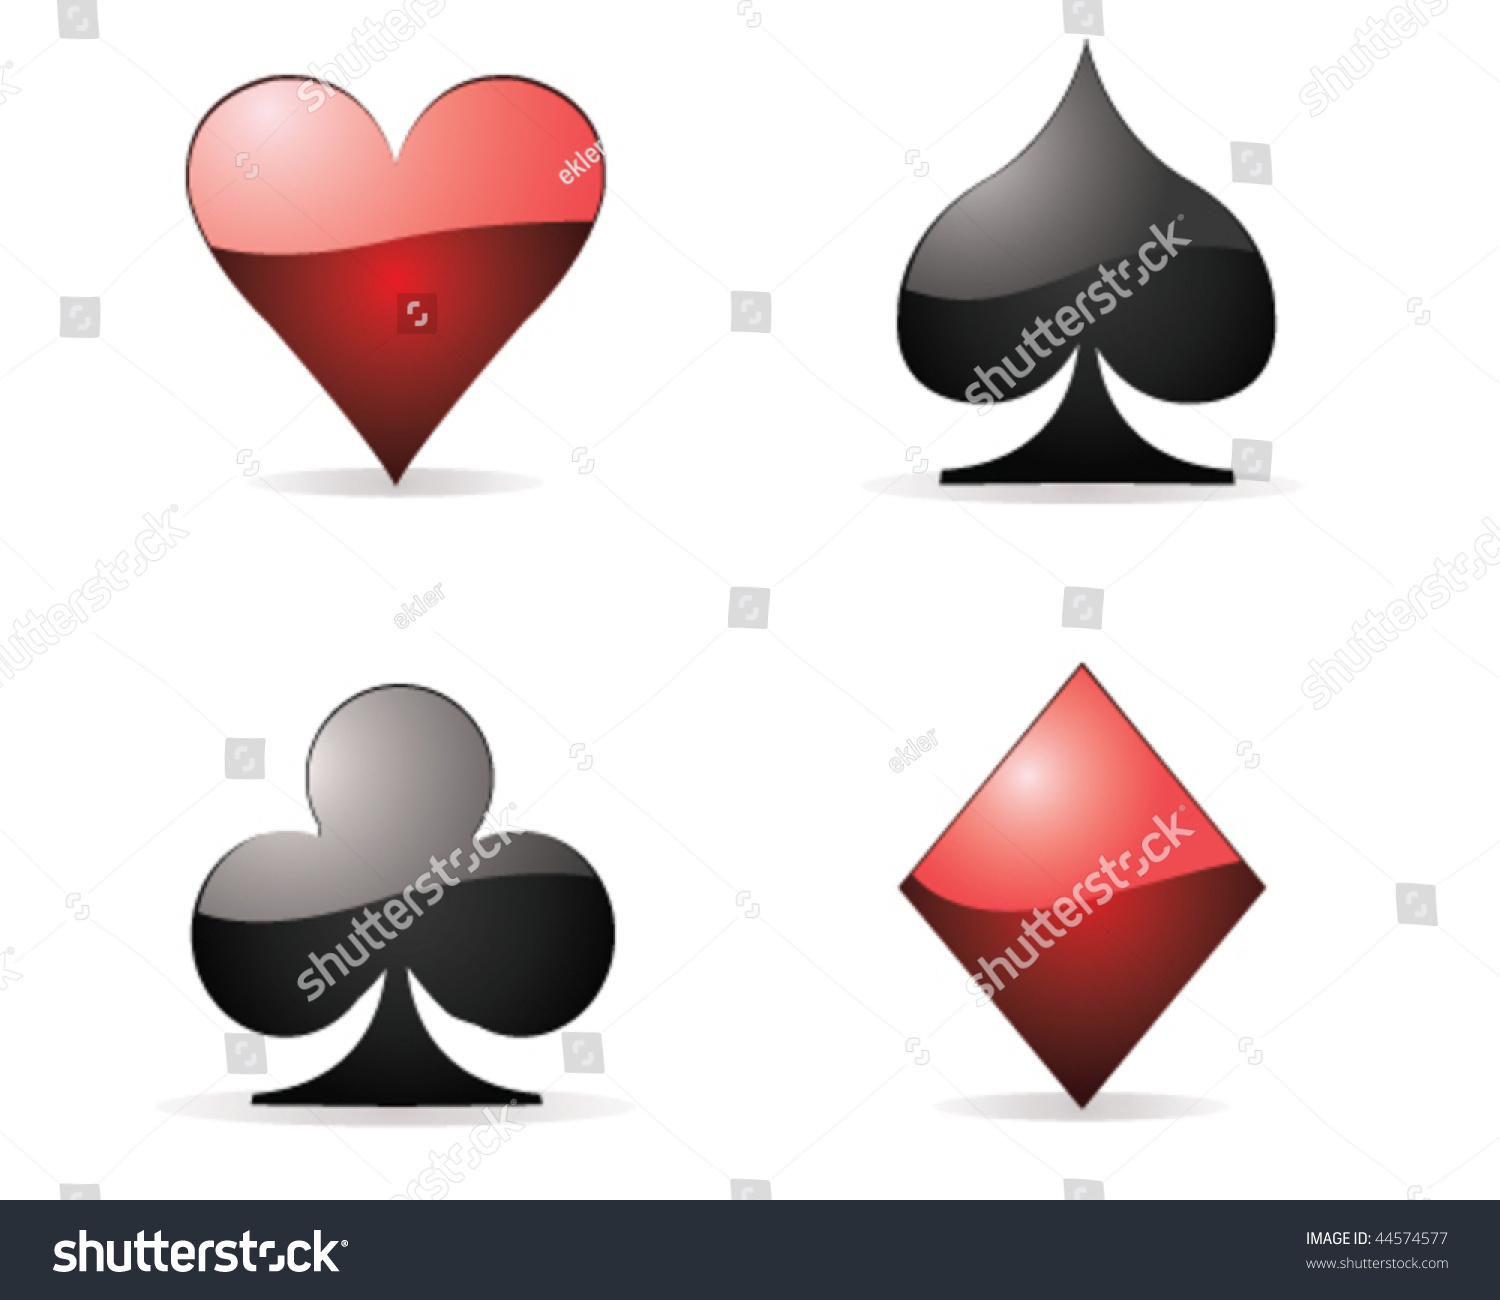 Poker card signs / Bbc slot